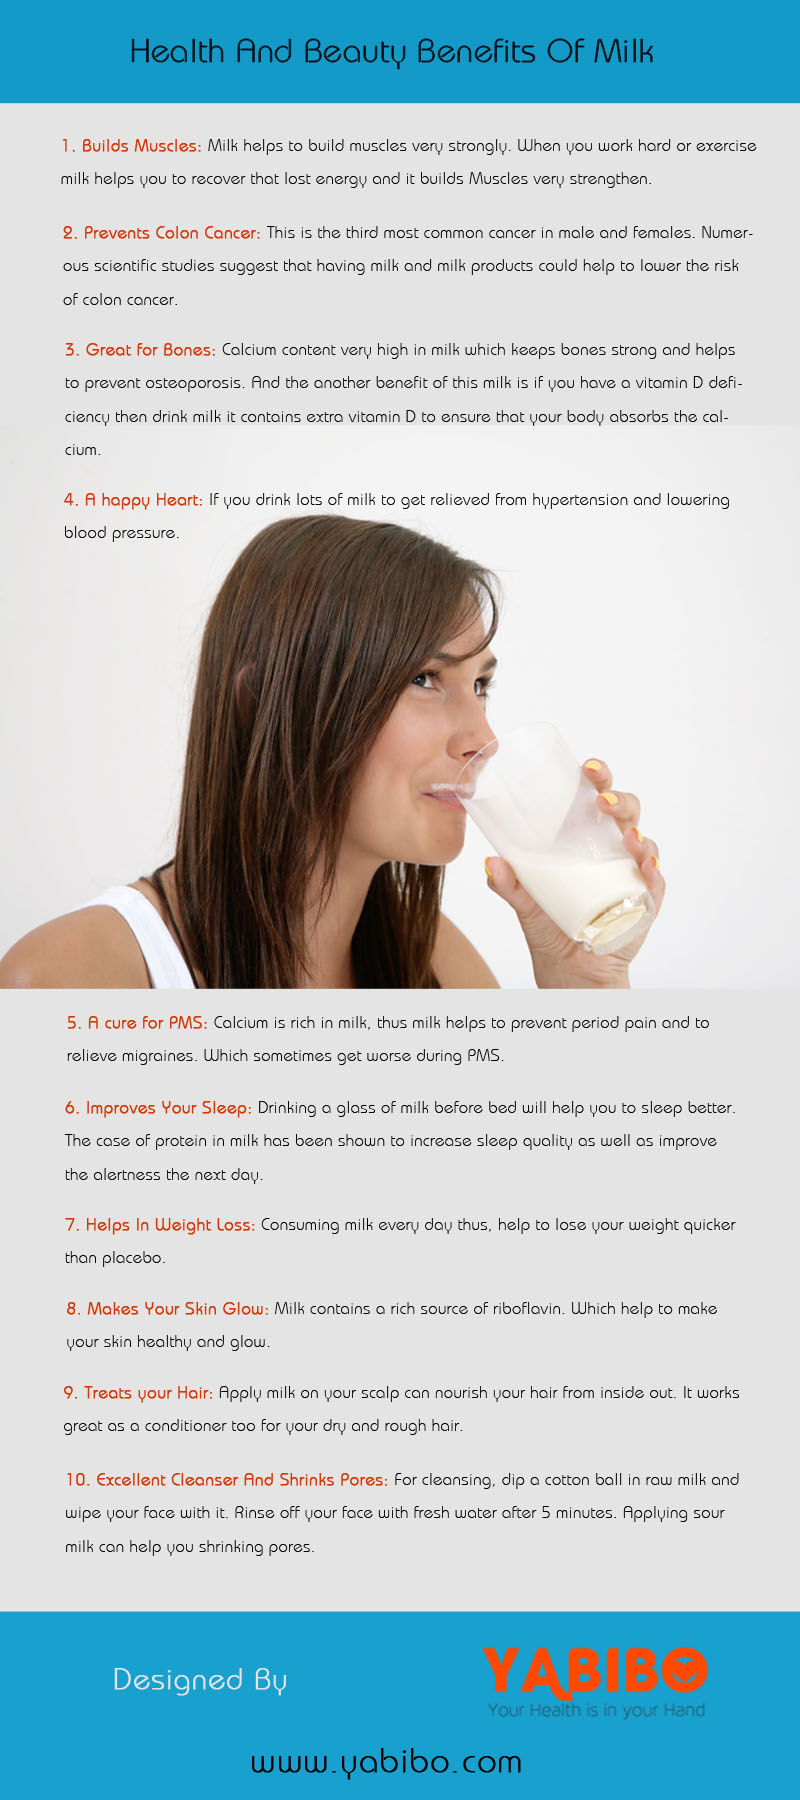 Health And Beauty Benefits Of Milk - Health And Beauty Benefits Of Milk